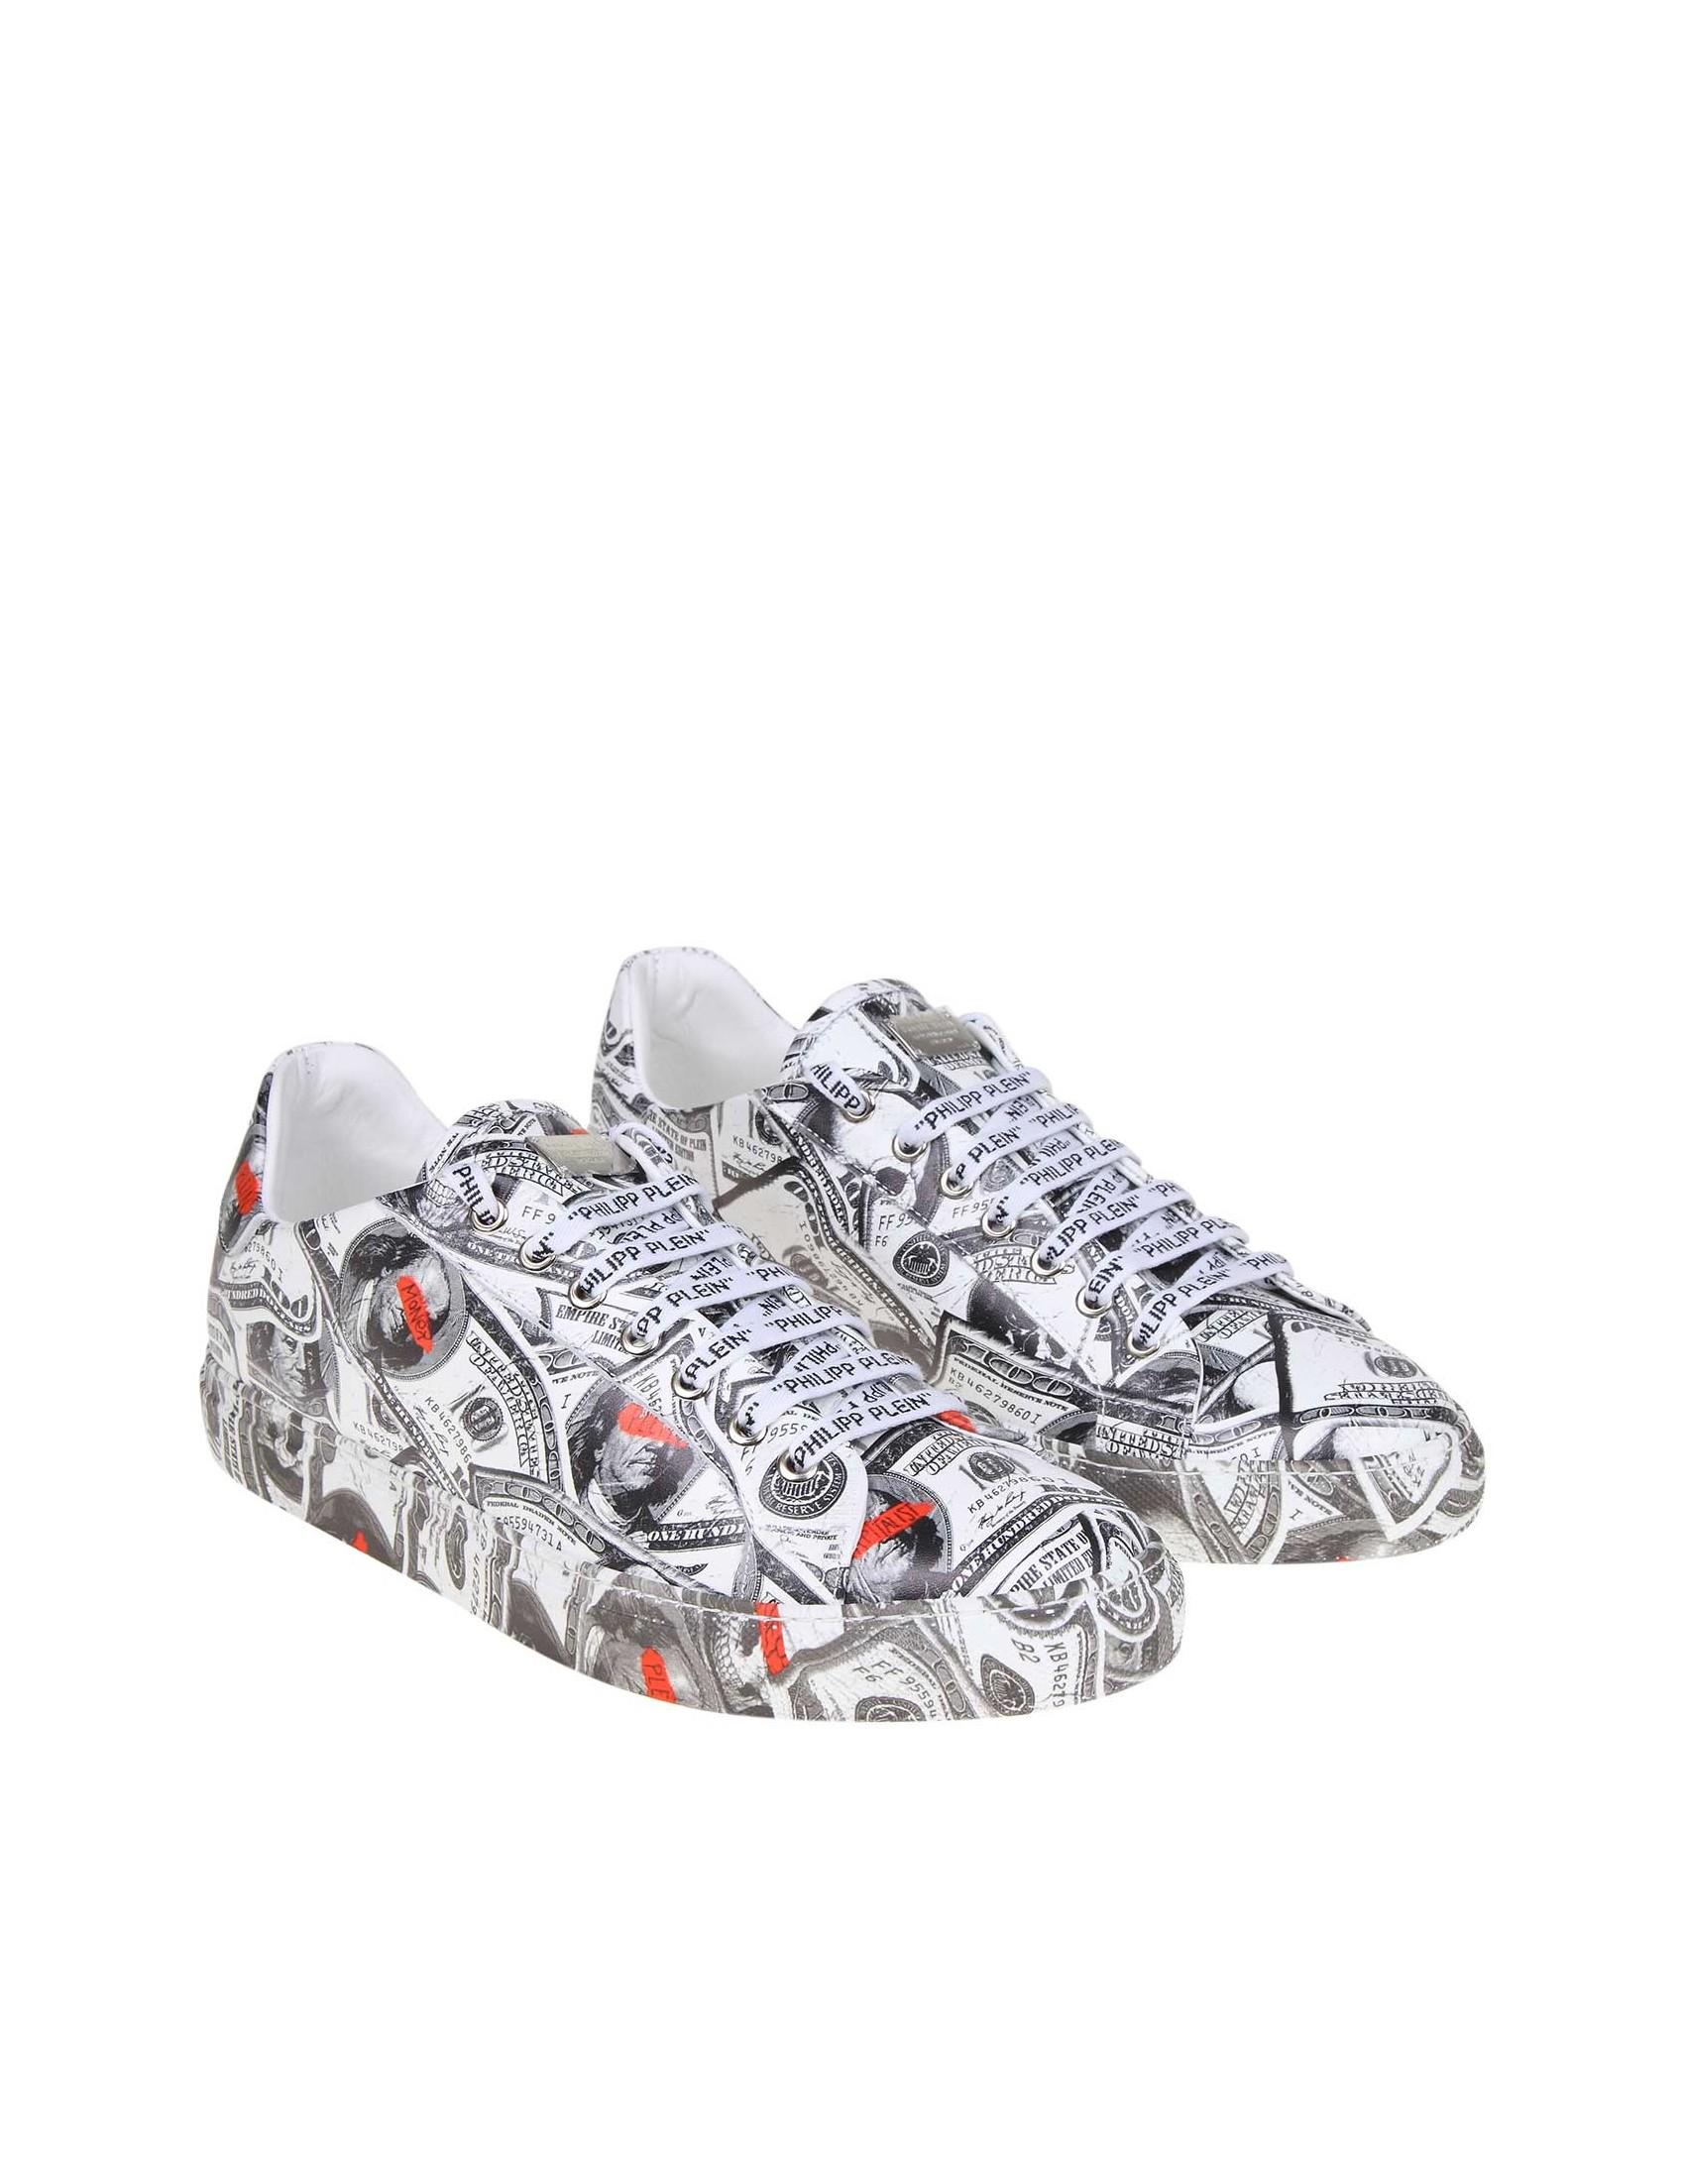 45109f8468 PHILIPP PLEIN LO-TOP DOLLAR SNEAKERS IN LEATHER WITH DOLLAR PRINT